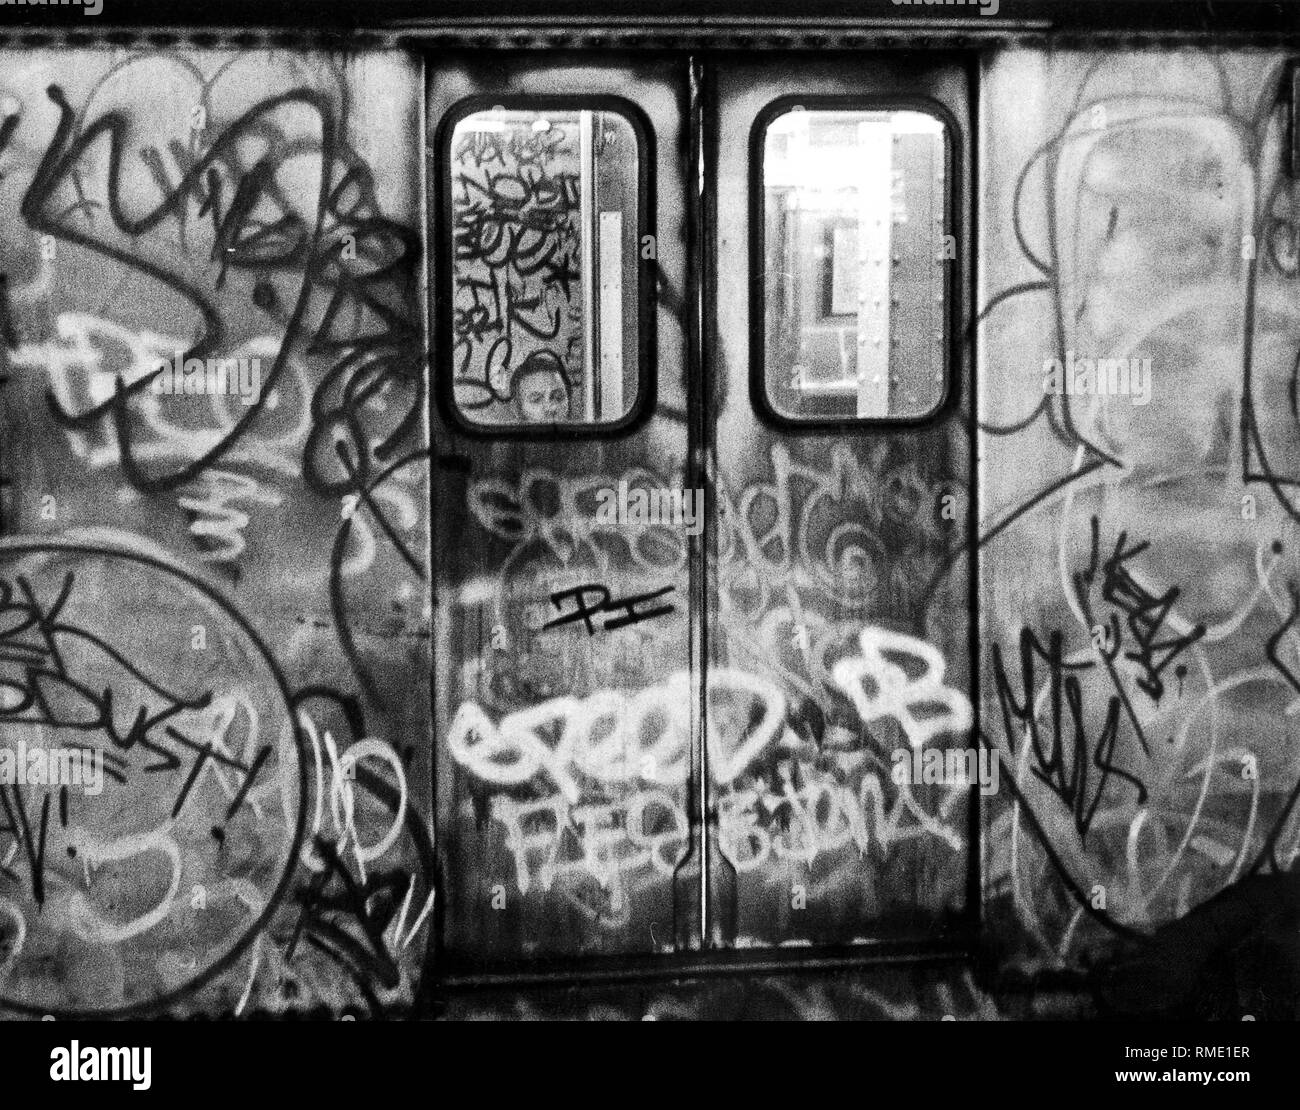 Subway in New York City. photo from the 80s. - Stock Image